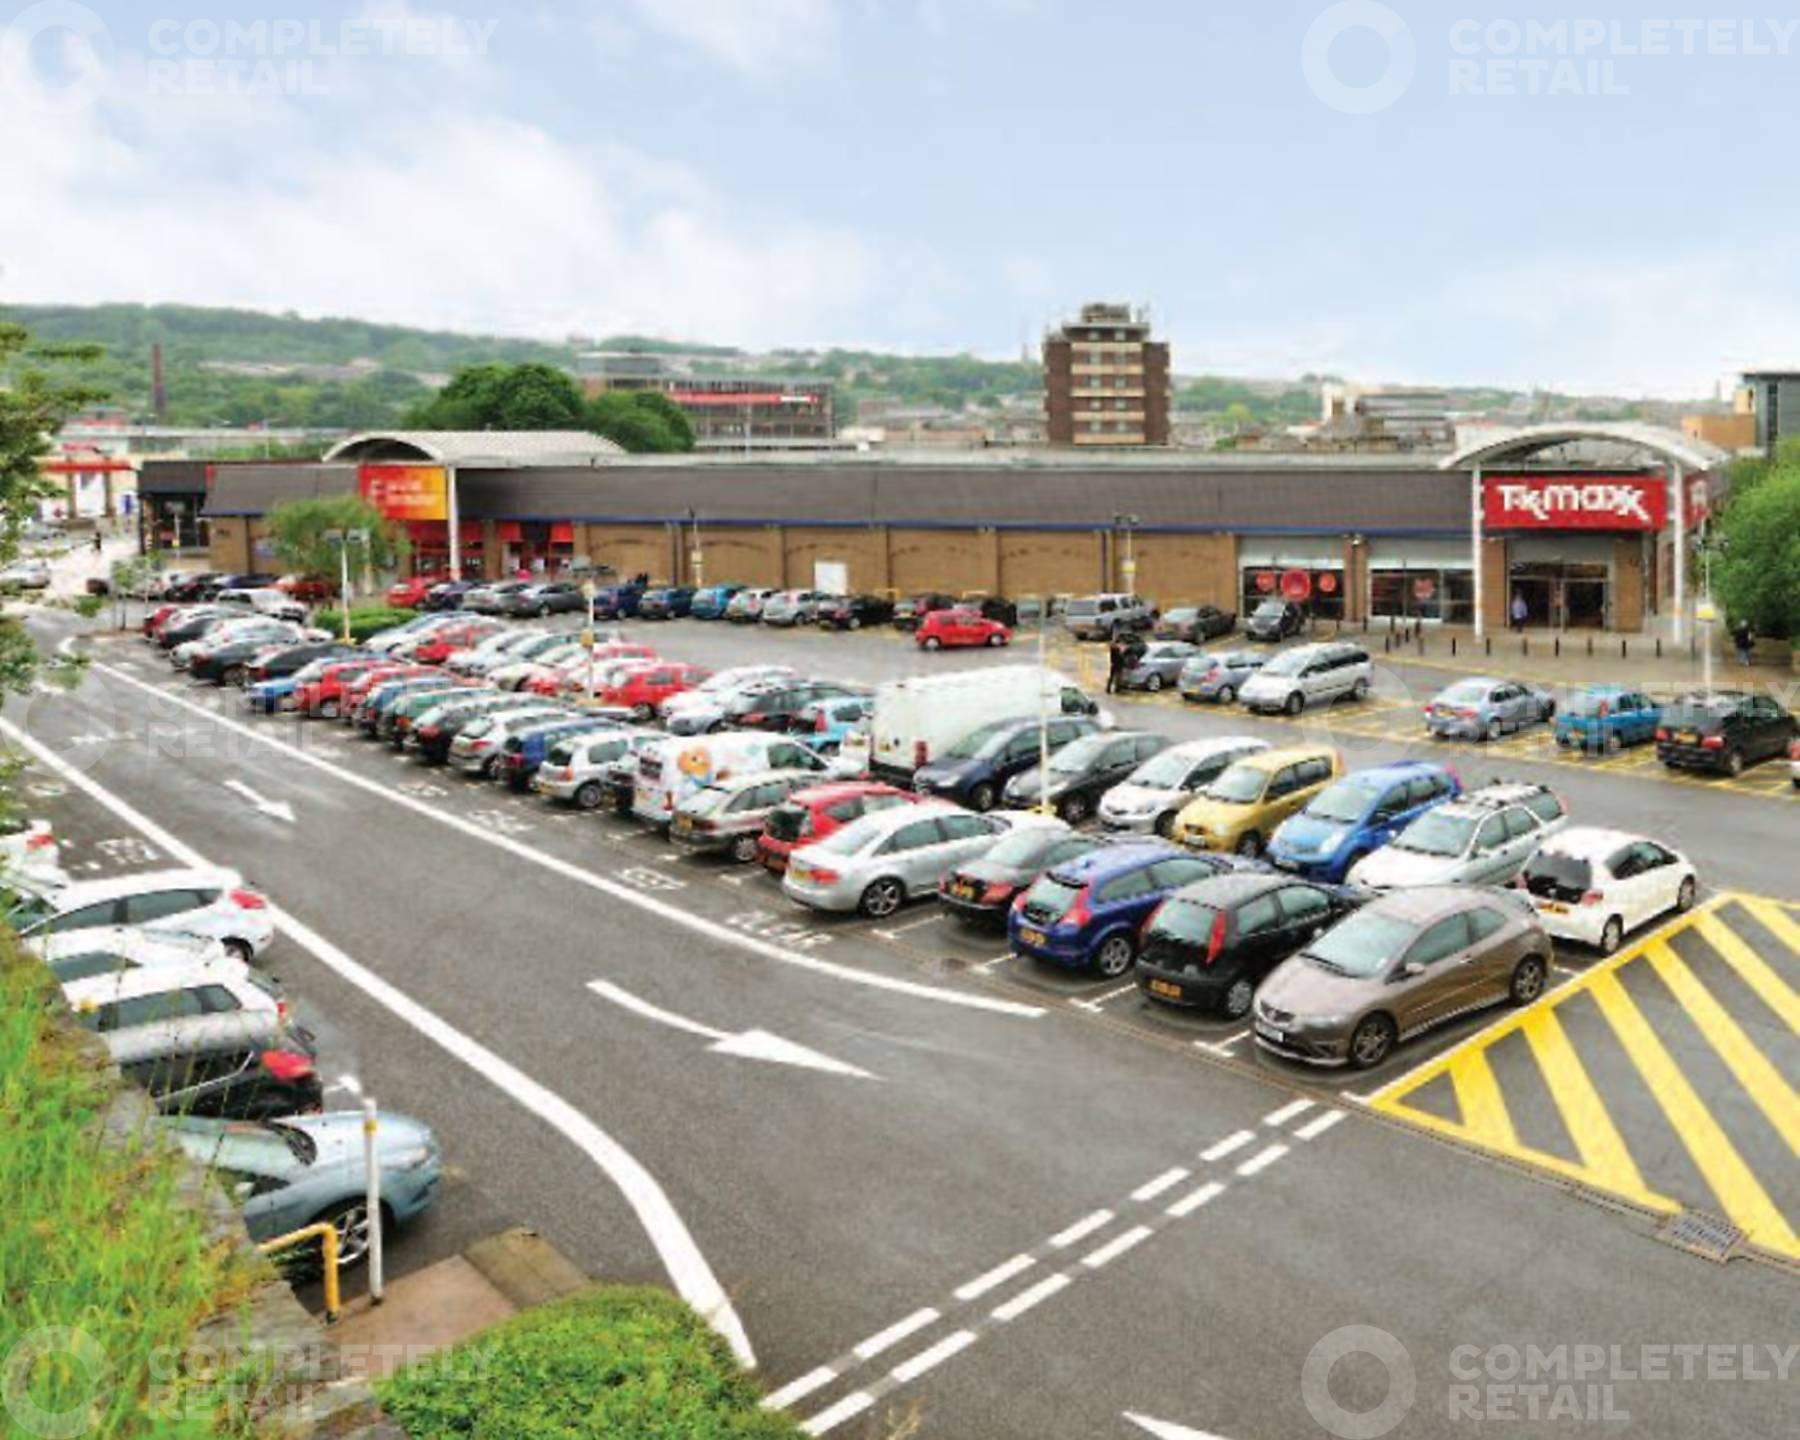 Burnley Retail Park